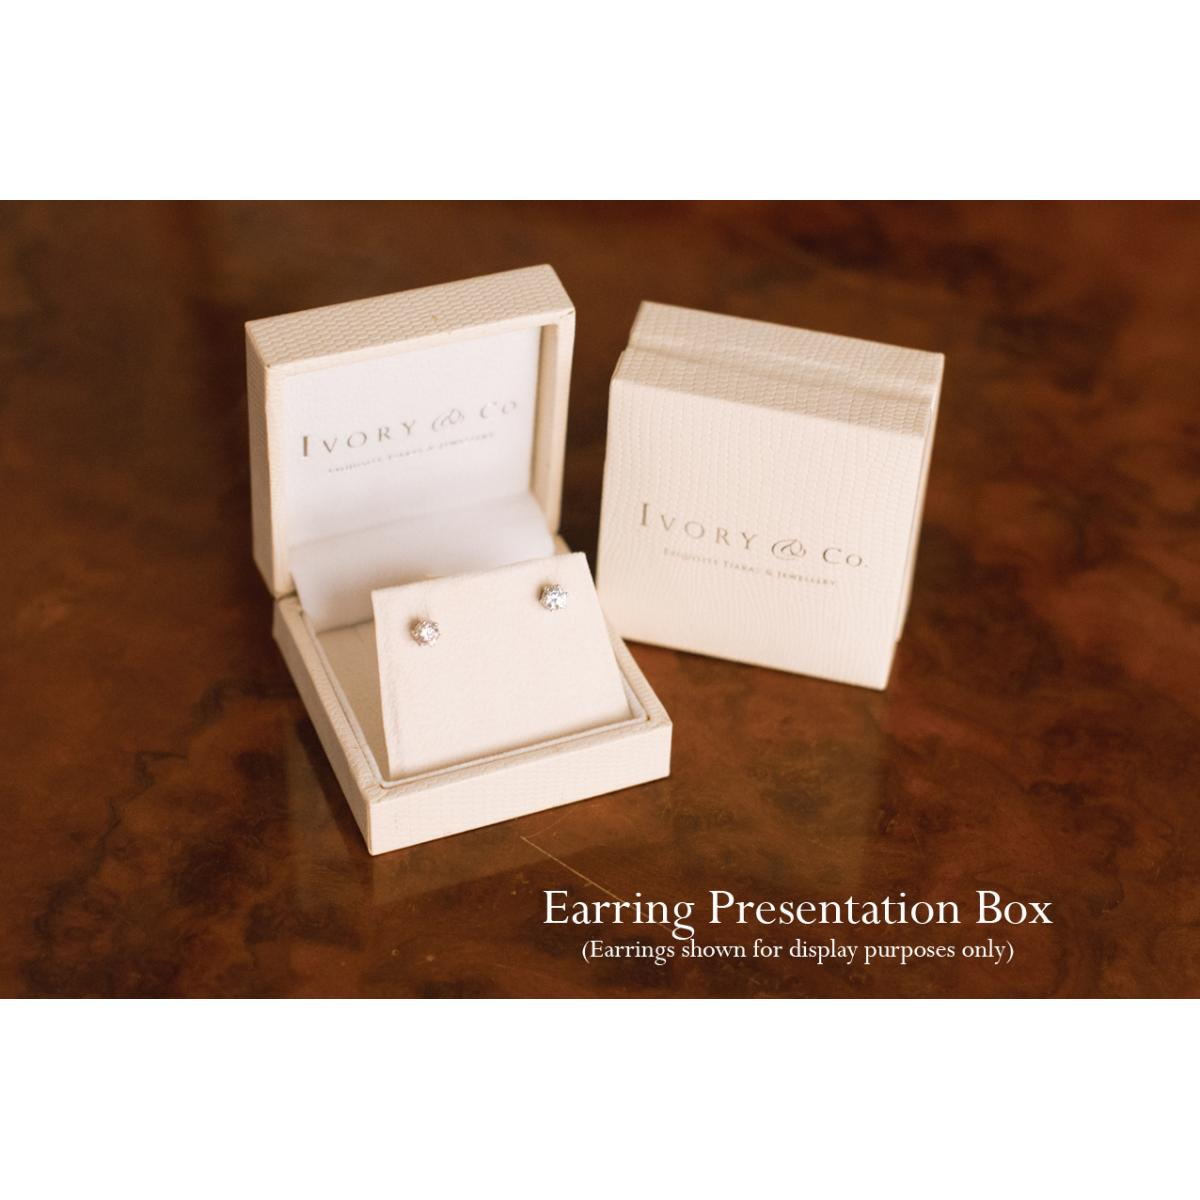 Ivory and Co Strasbourg Earrings